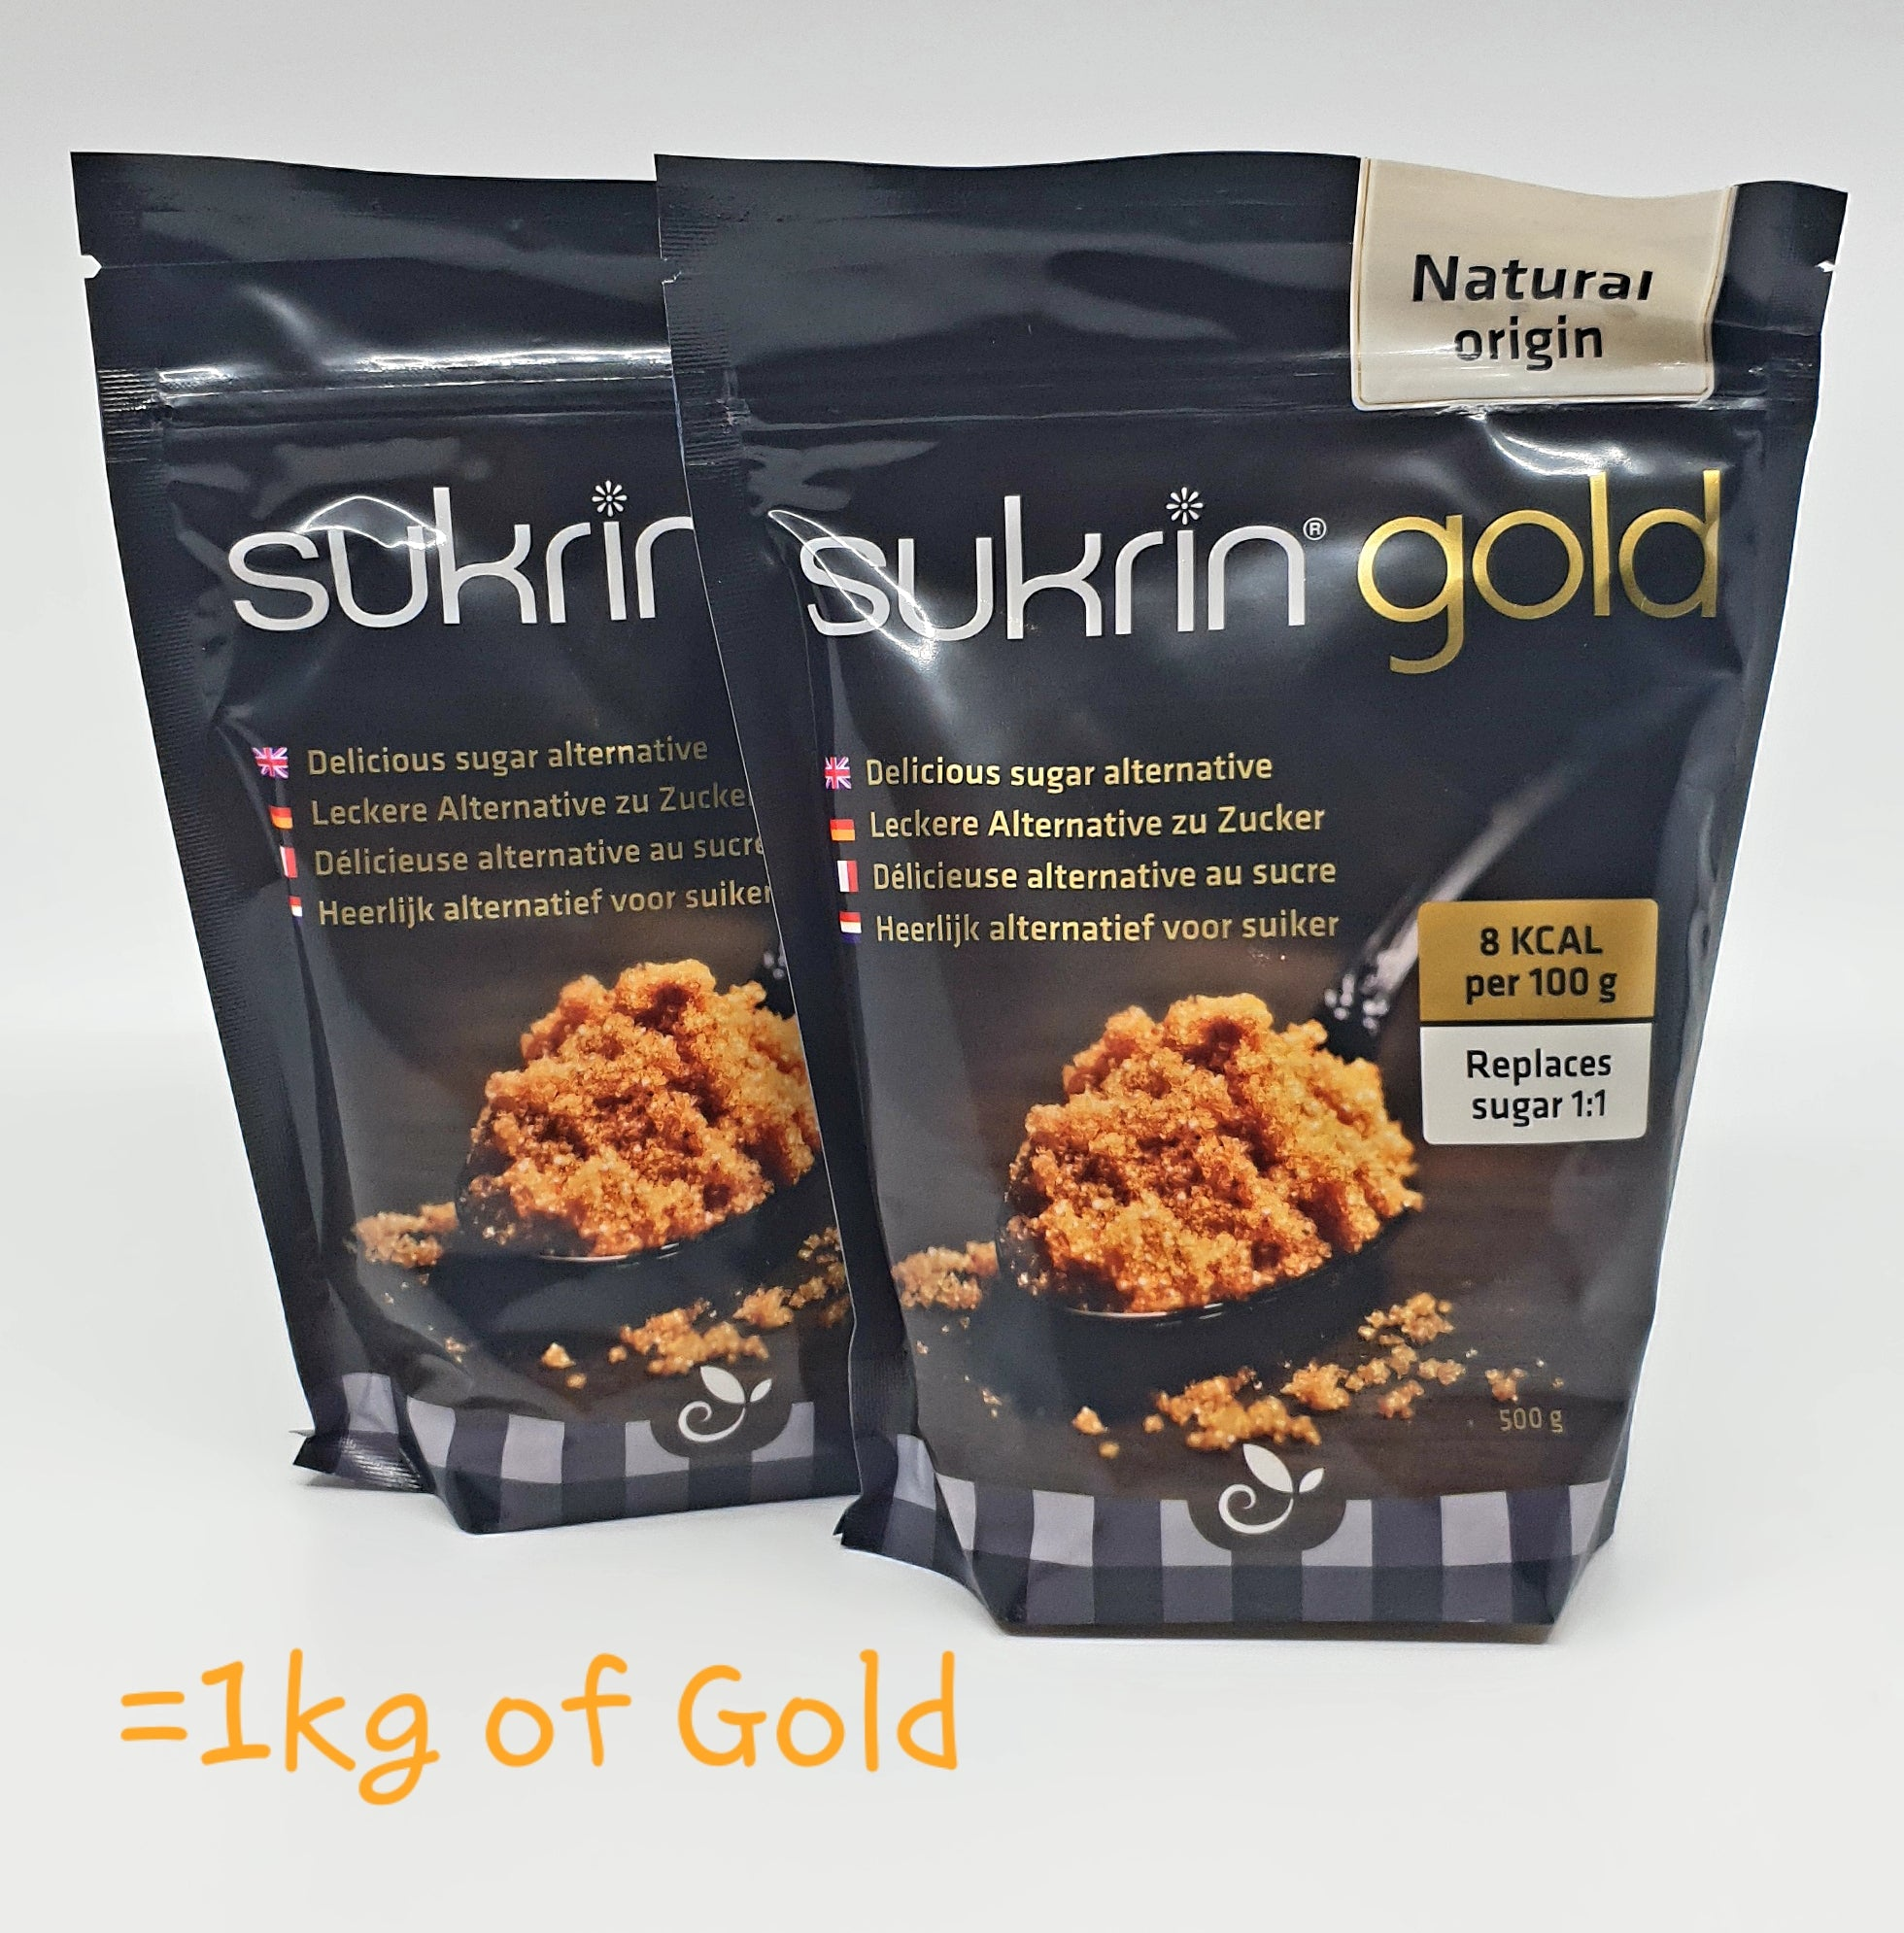 The (1kg) Golden Sugar Pack (2 x Gold Packs)